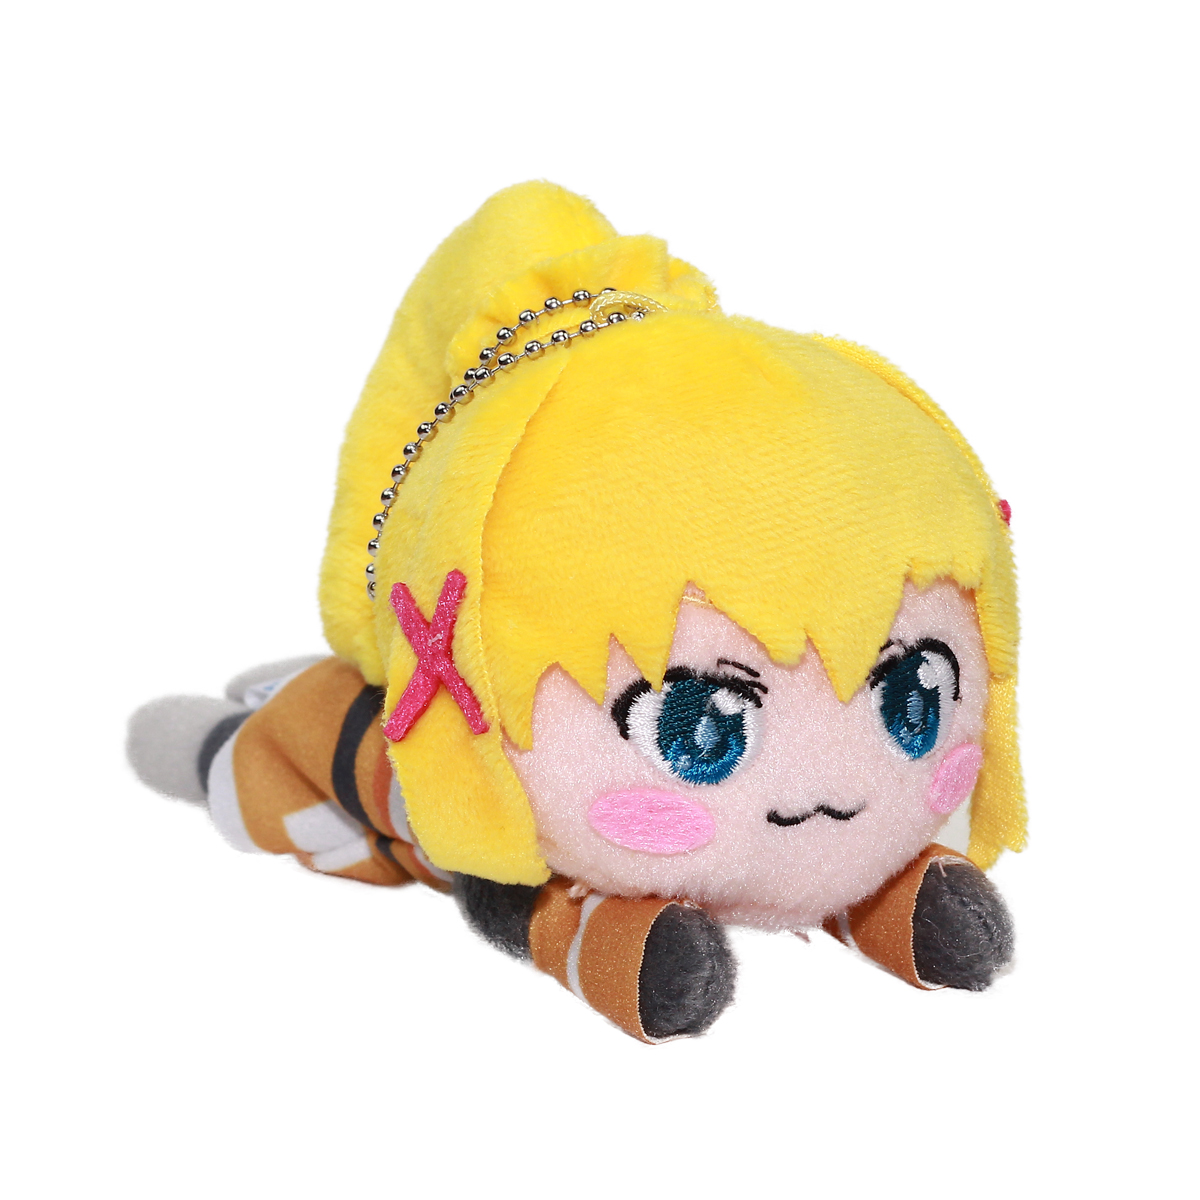 Konosuba Darkness Plush Doll Gods Blessing on This Wonderful World!, Sega, Keychain Size 5 Inches